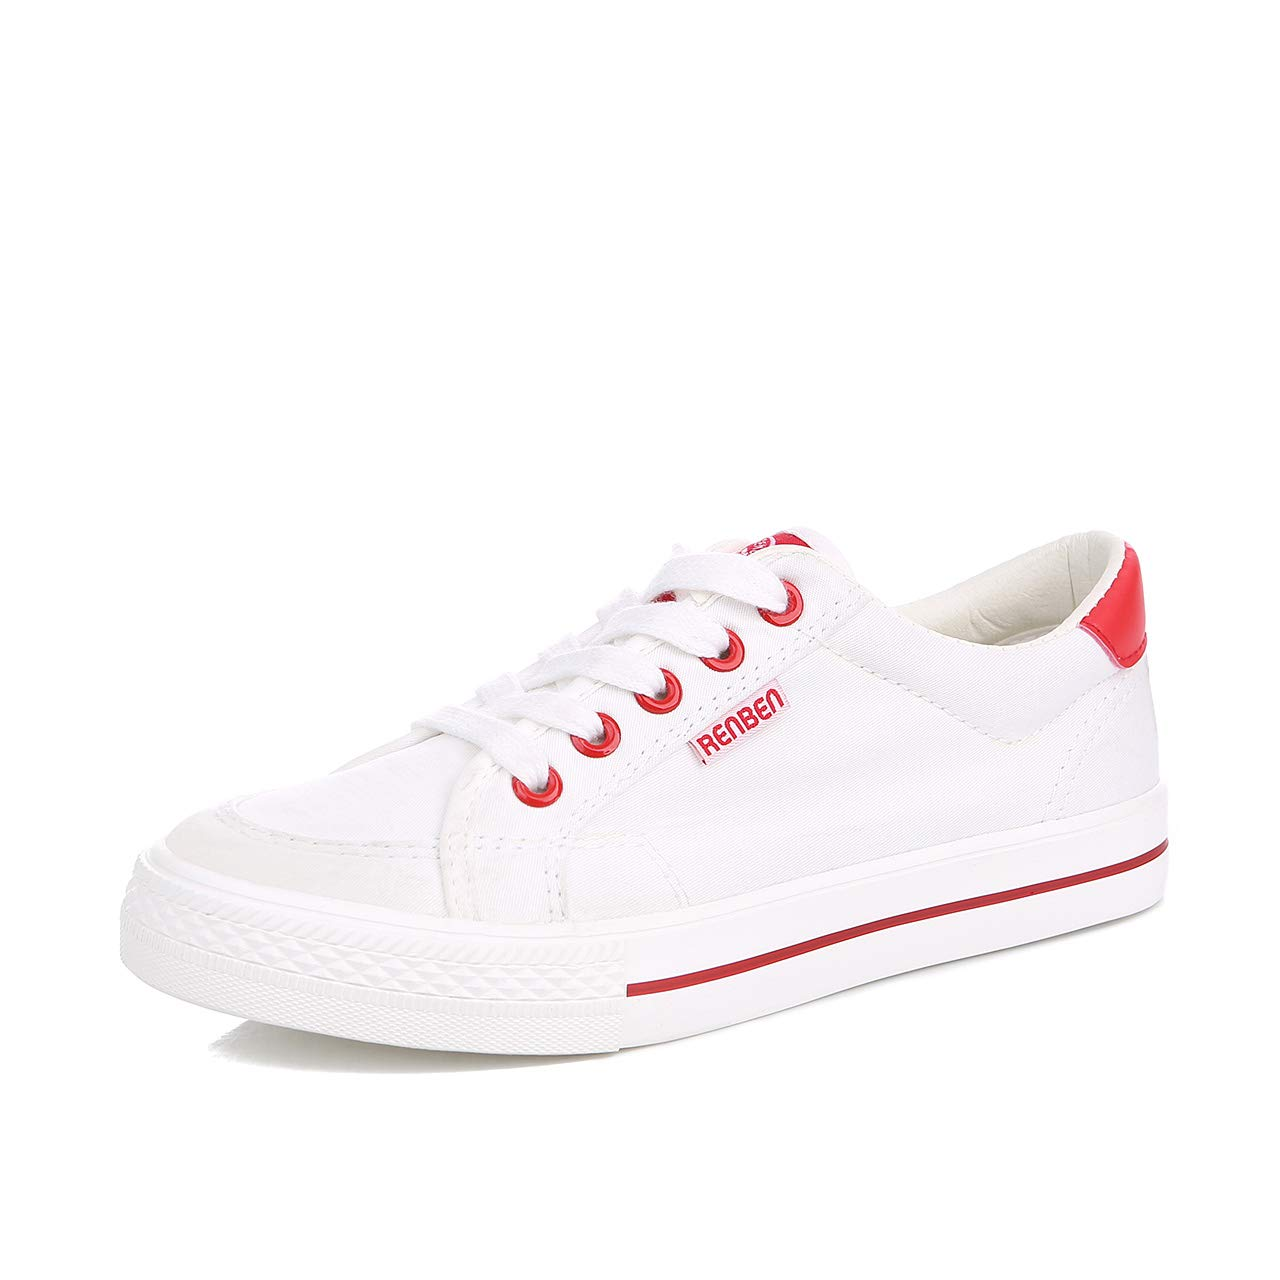 Renben Womens Sneakers Canvas Slip On Flat Low Top Fashion Sneaker Shoes (8 .5 B(M) US, Red)